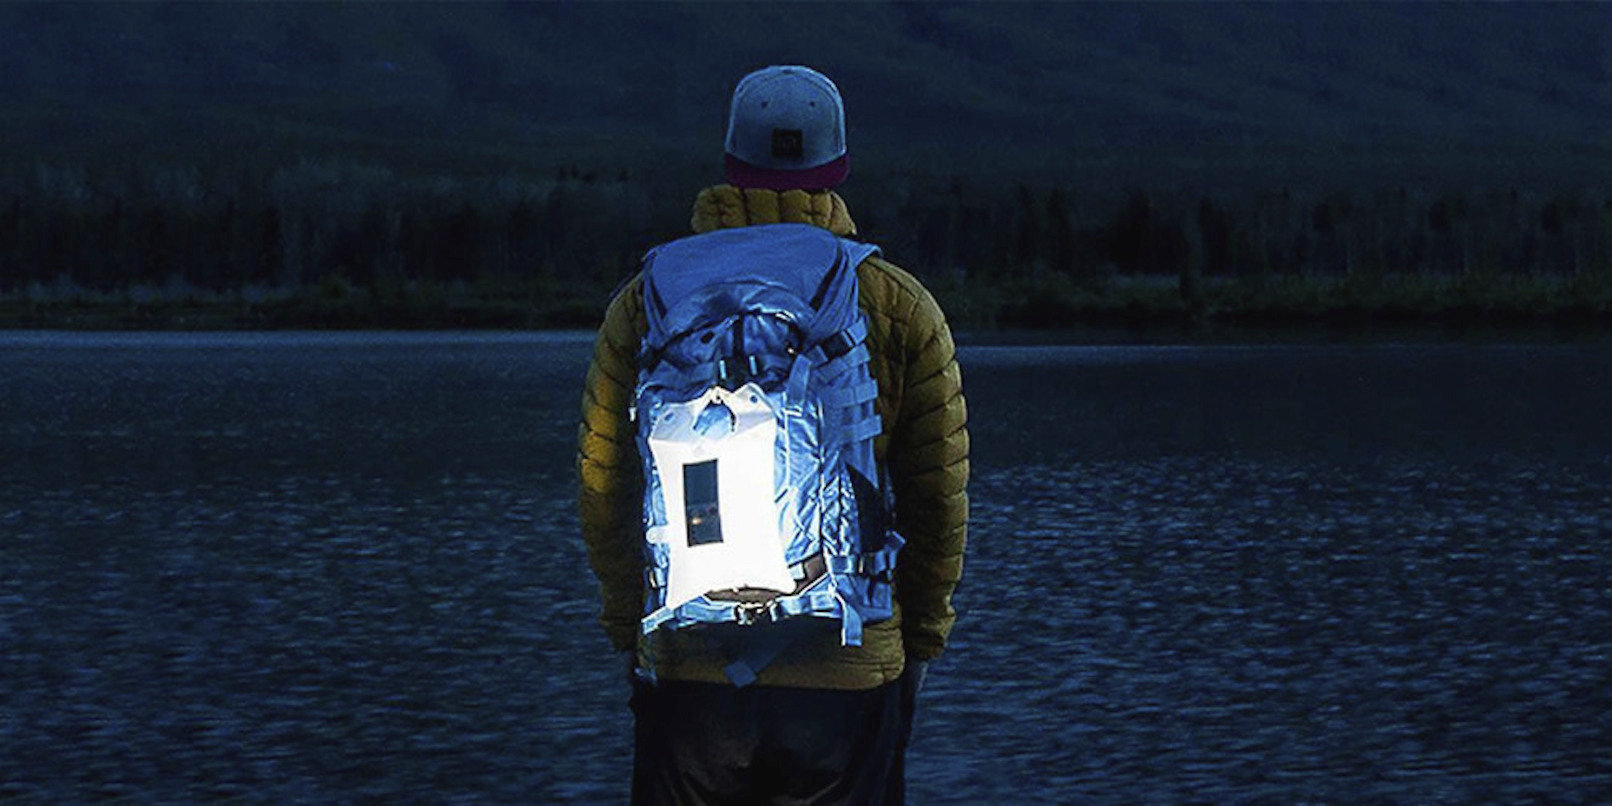 LuminAID PackLite 16 Inflatable Solar Light is everything you need when heading outdoors